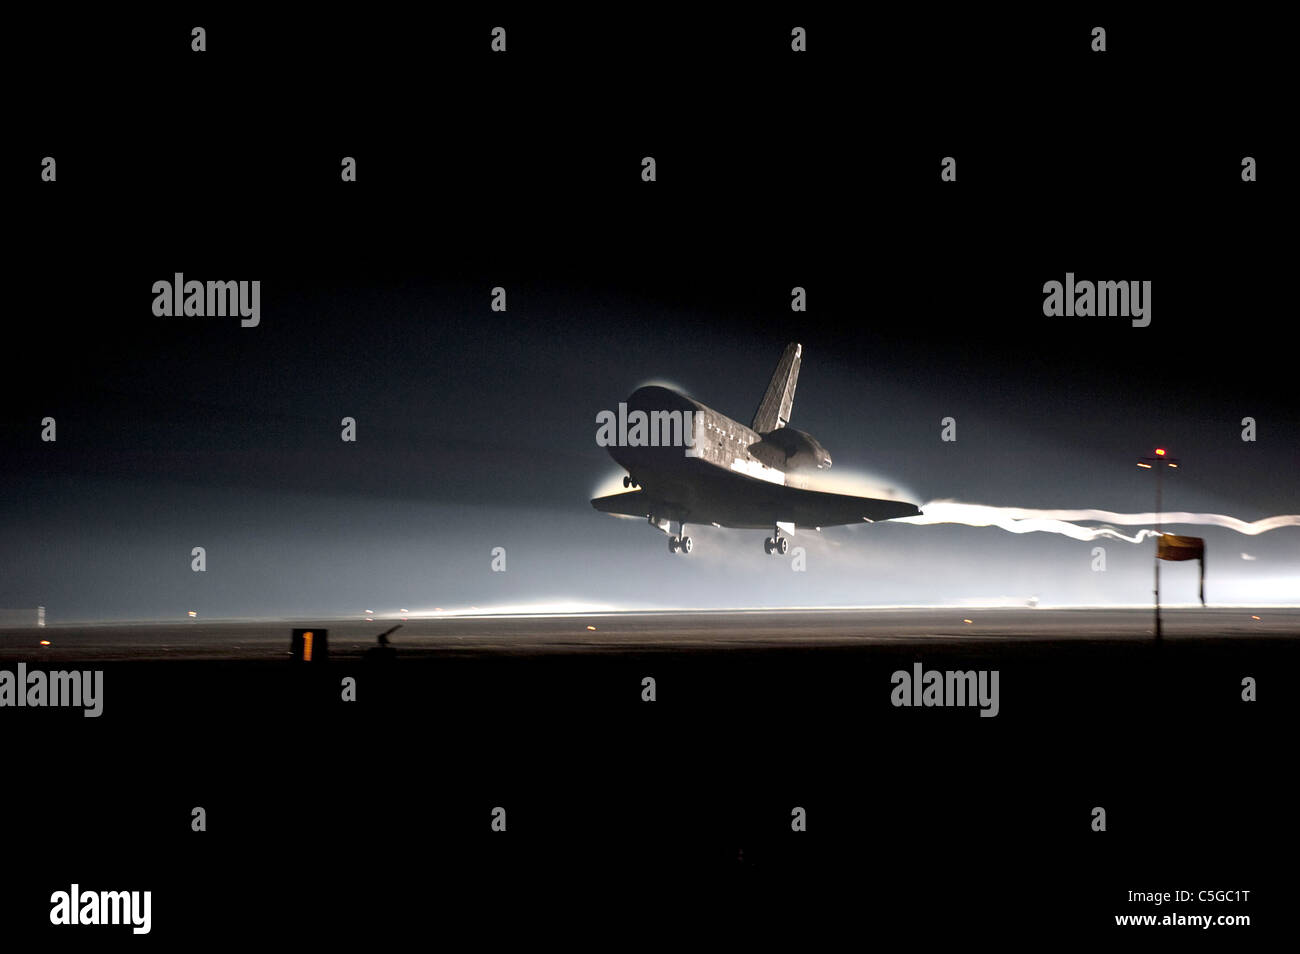 Final Space Shuttle Atlantis lands at Kennedy Space Center - Stock Image